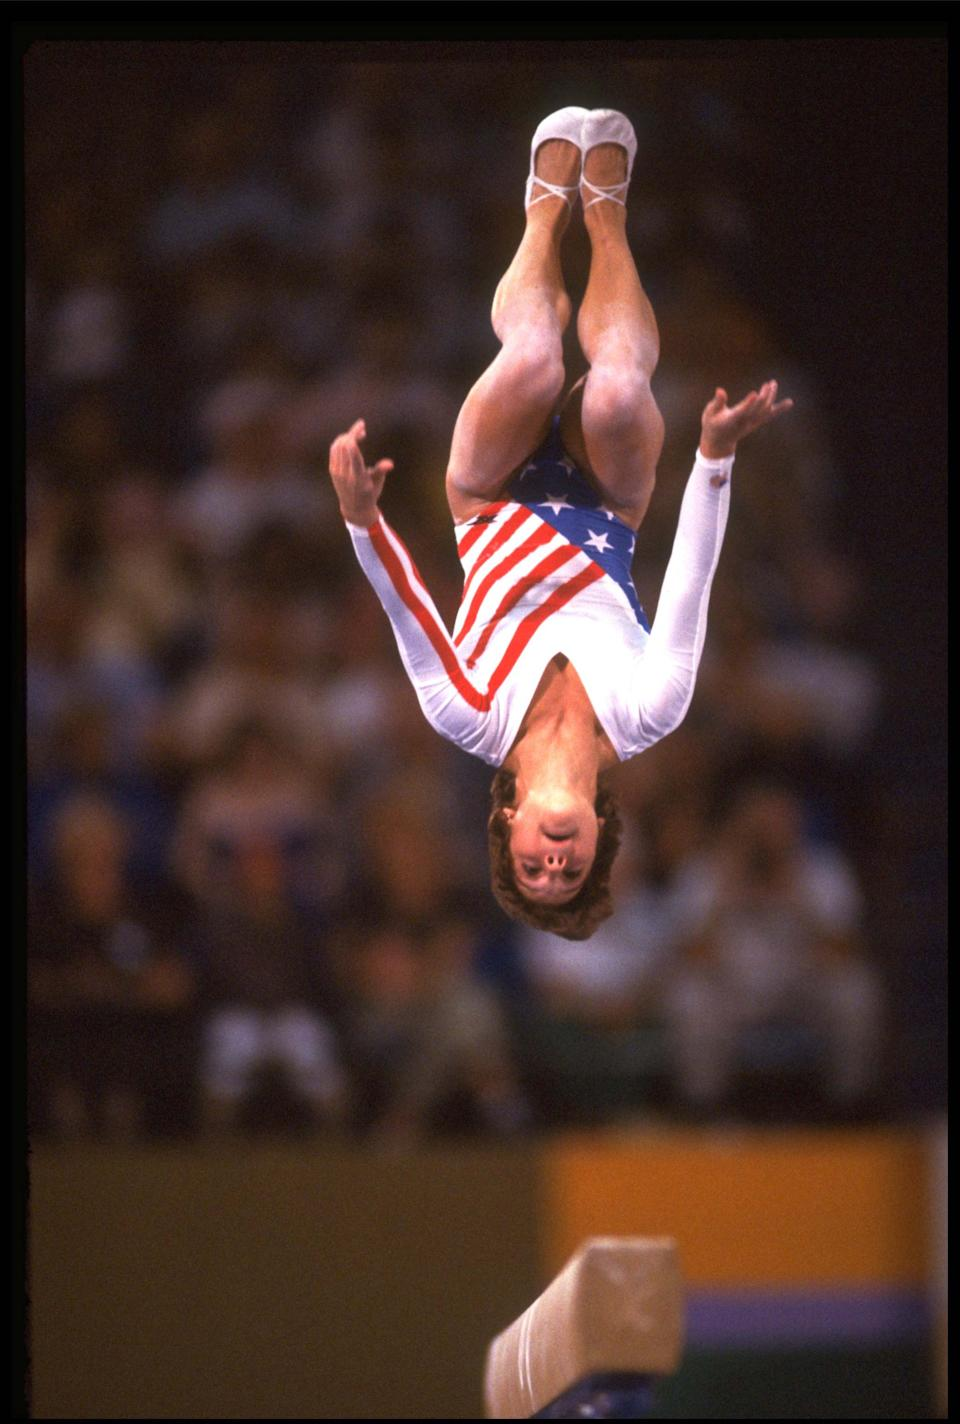 5 AUG 1988: MARY LOU RETTON OF THE UNITED STATES PERFORMS A FLIP ON THE BALANCE BEAM DURING HER ROUTINE AT THE 1984 LOS ANGELES OLYMPICS. RETTON WON THE OVERALL GYMNASTICS GOLD MEDAL.